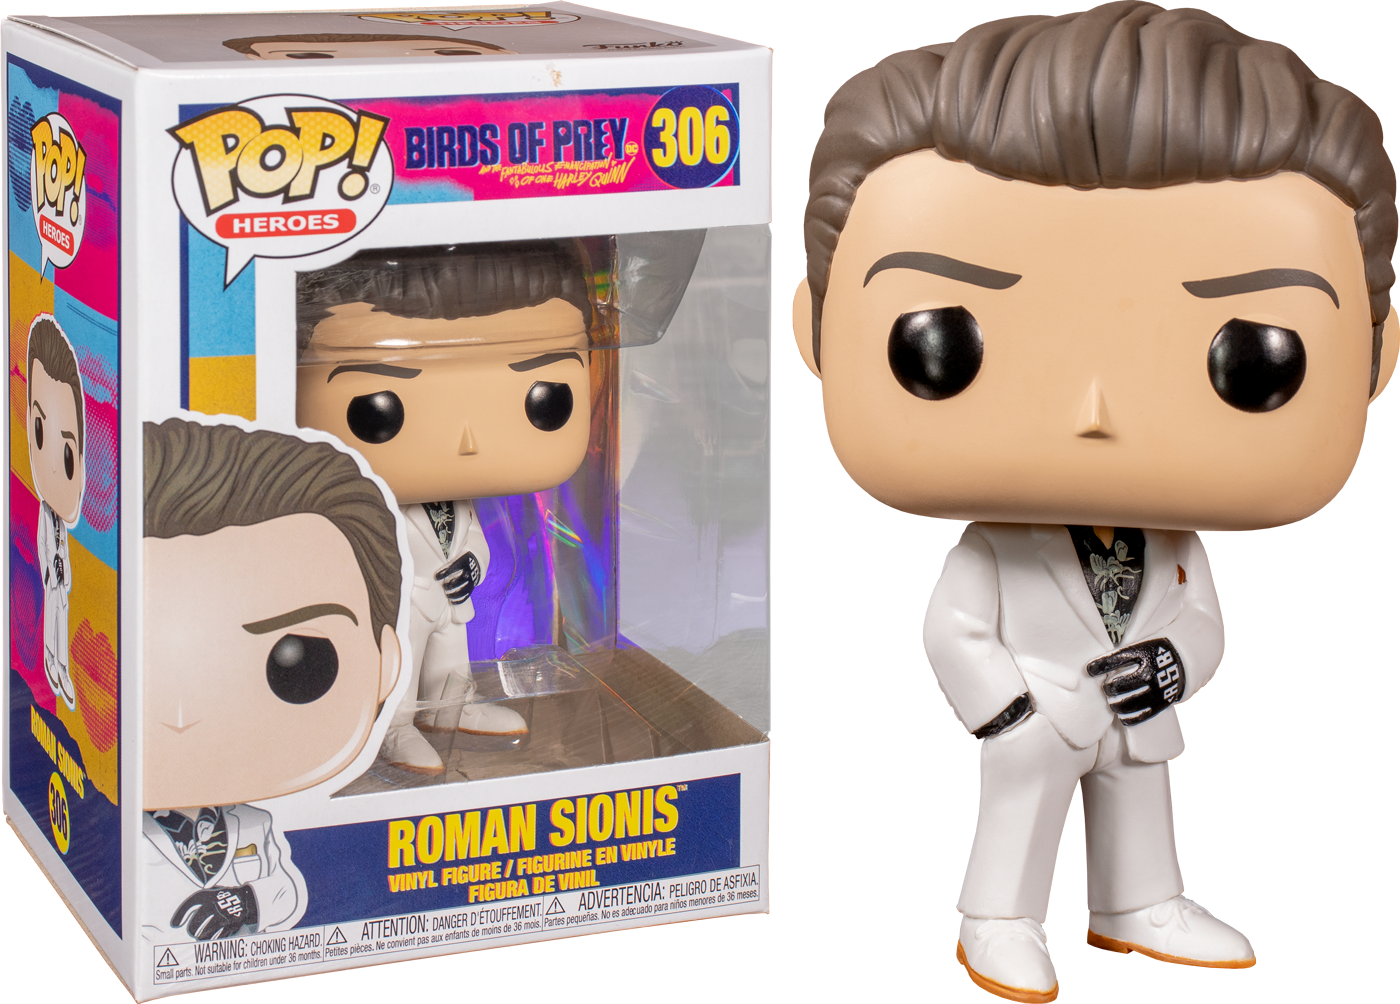 Funko Pop Birds Of Prey 2020 Roman Sionis 306 Chance The Amazing Collectables